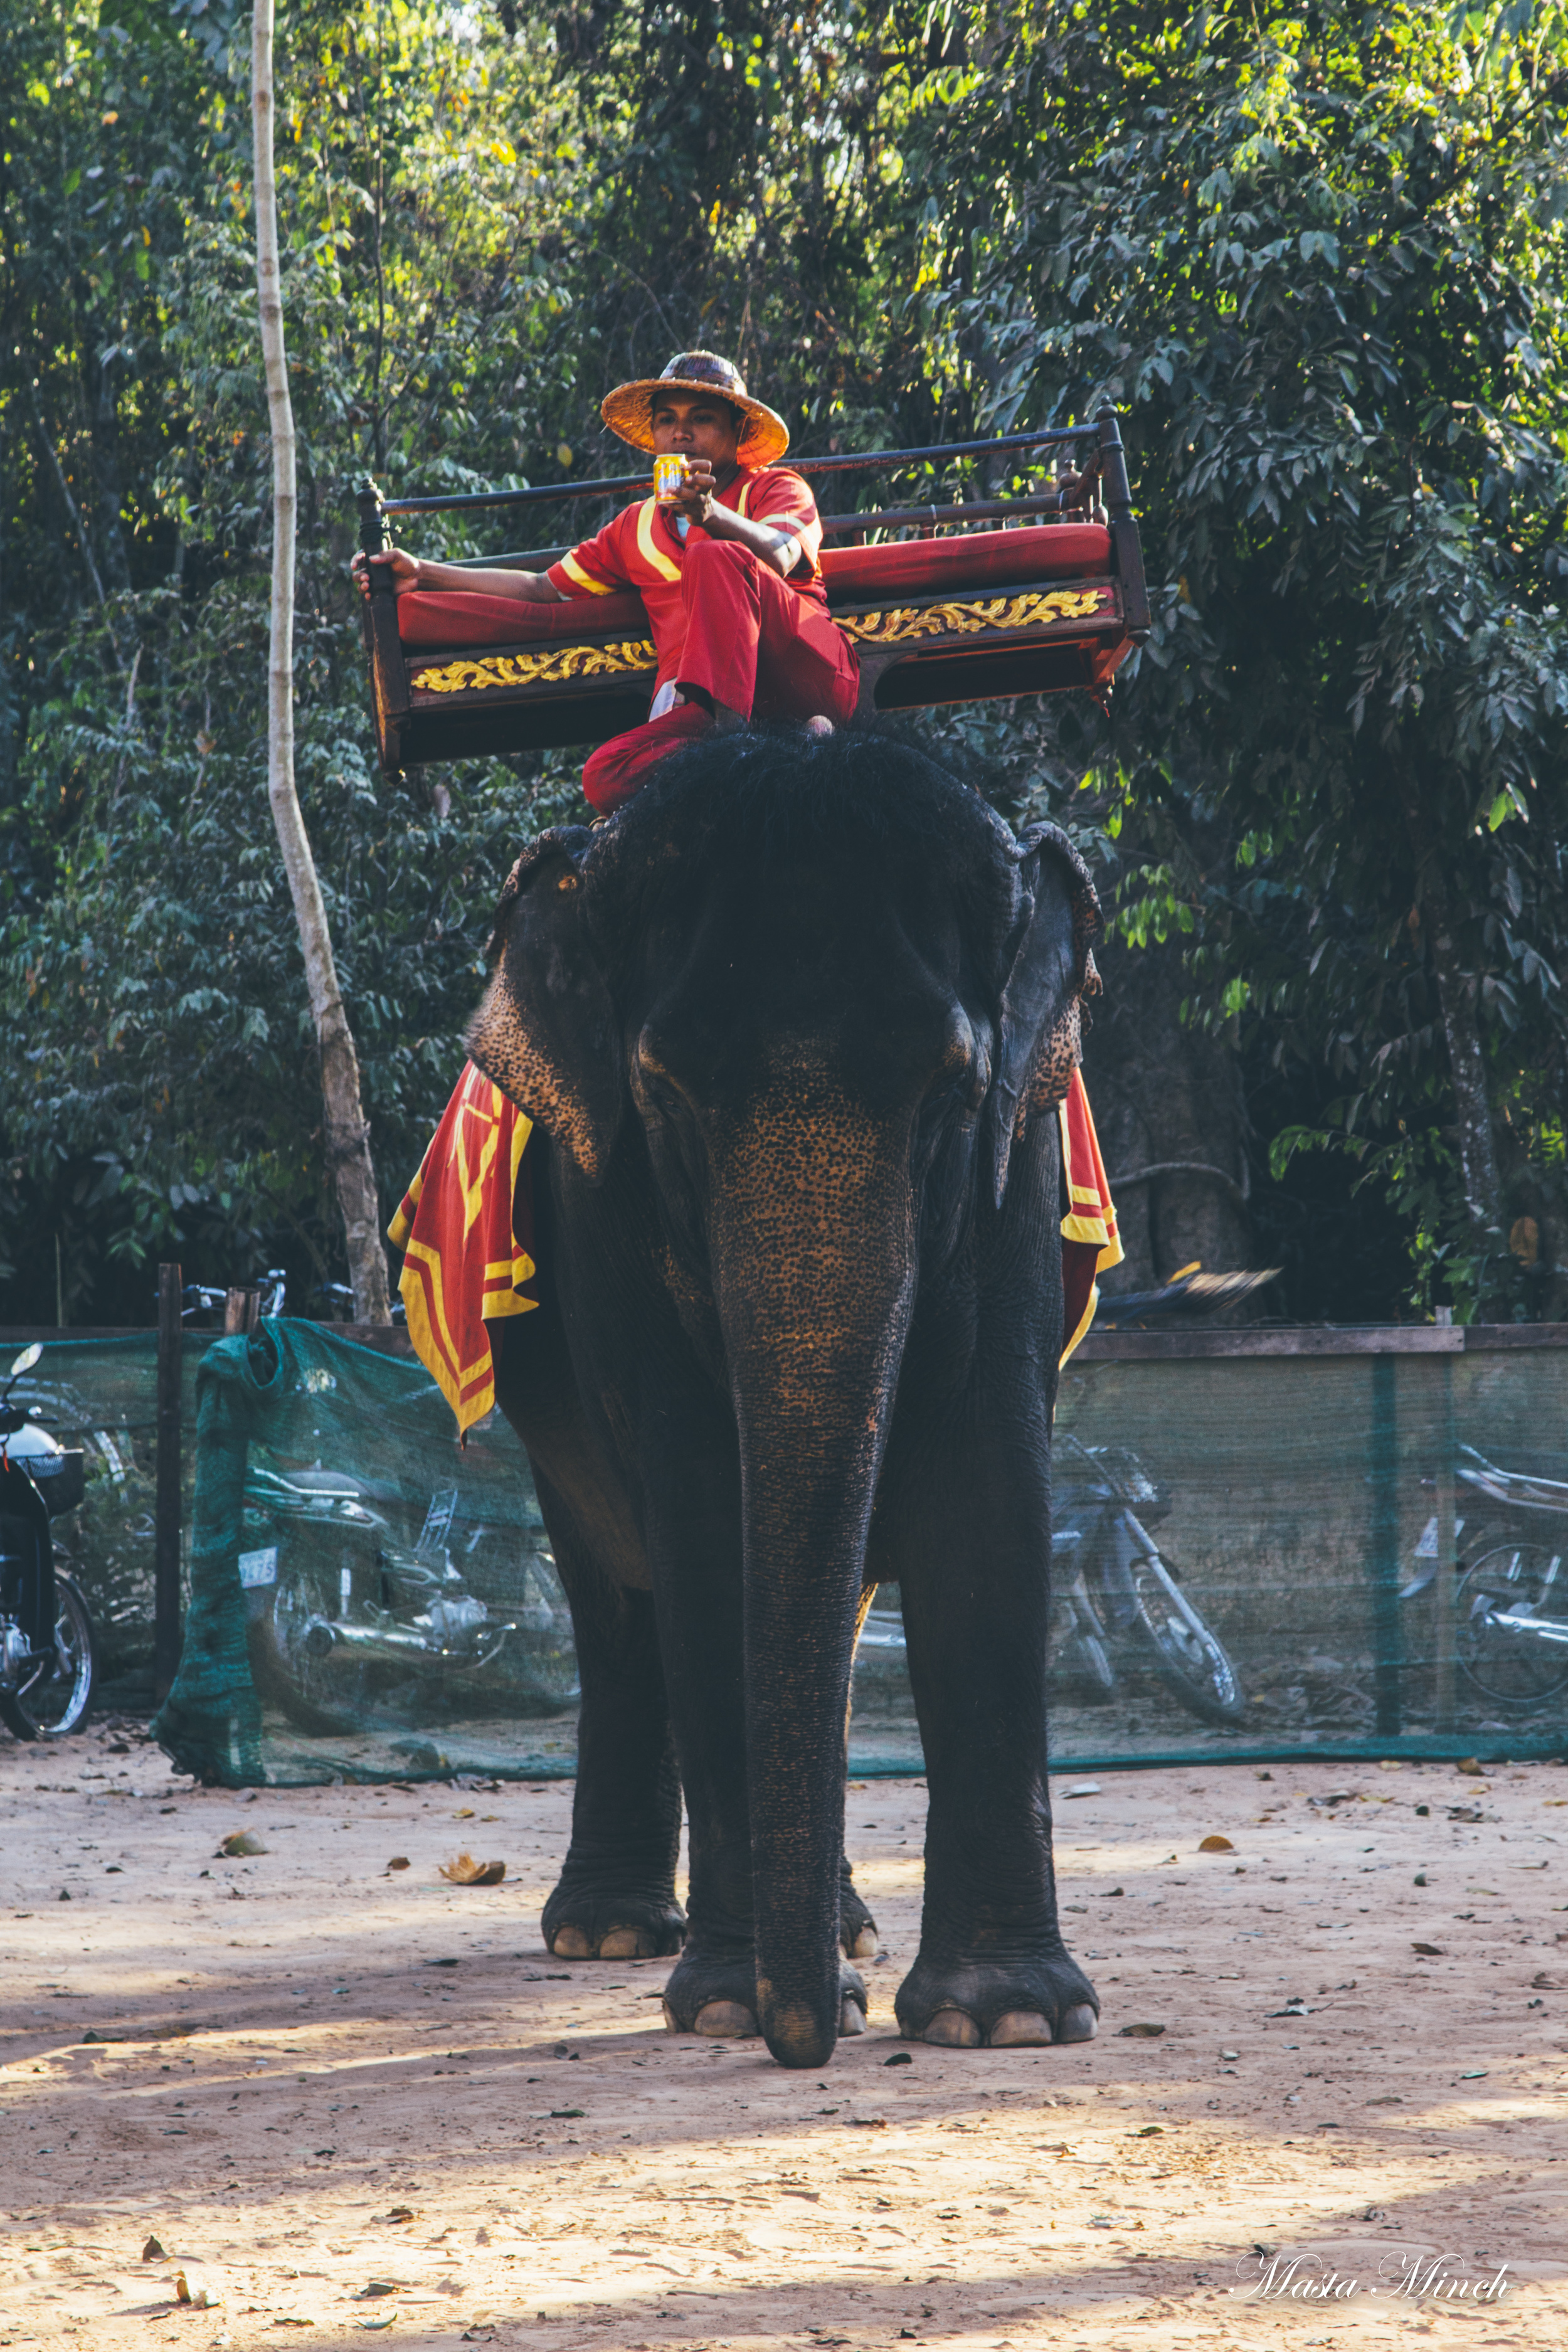 Elephant riding in Angkor Thom for $20. Don't ride elephants with that shit on their backs that's fucked up.